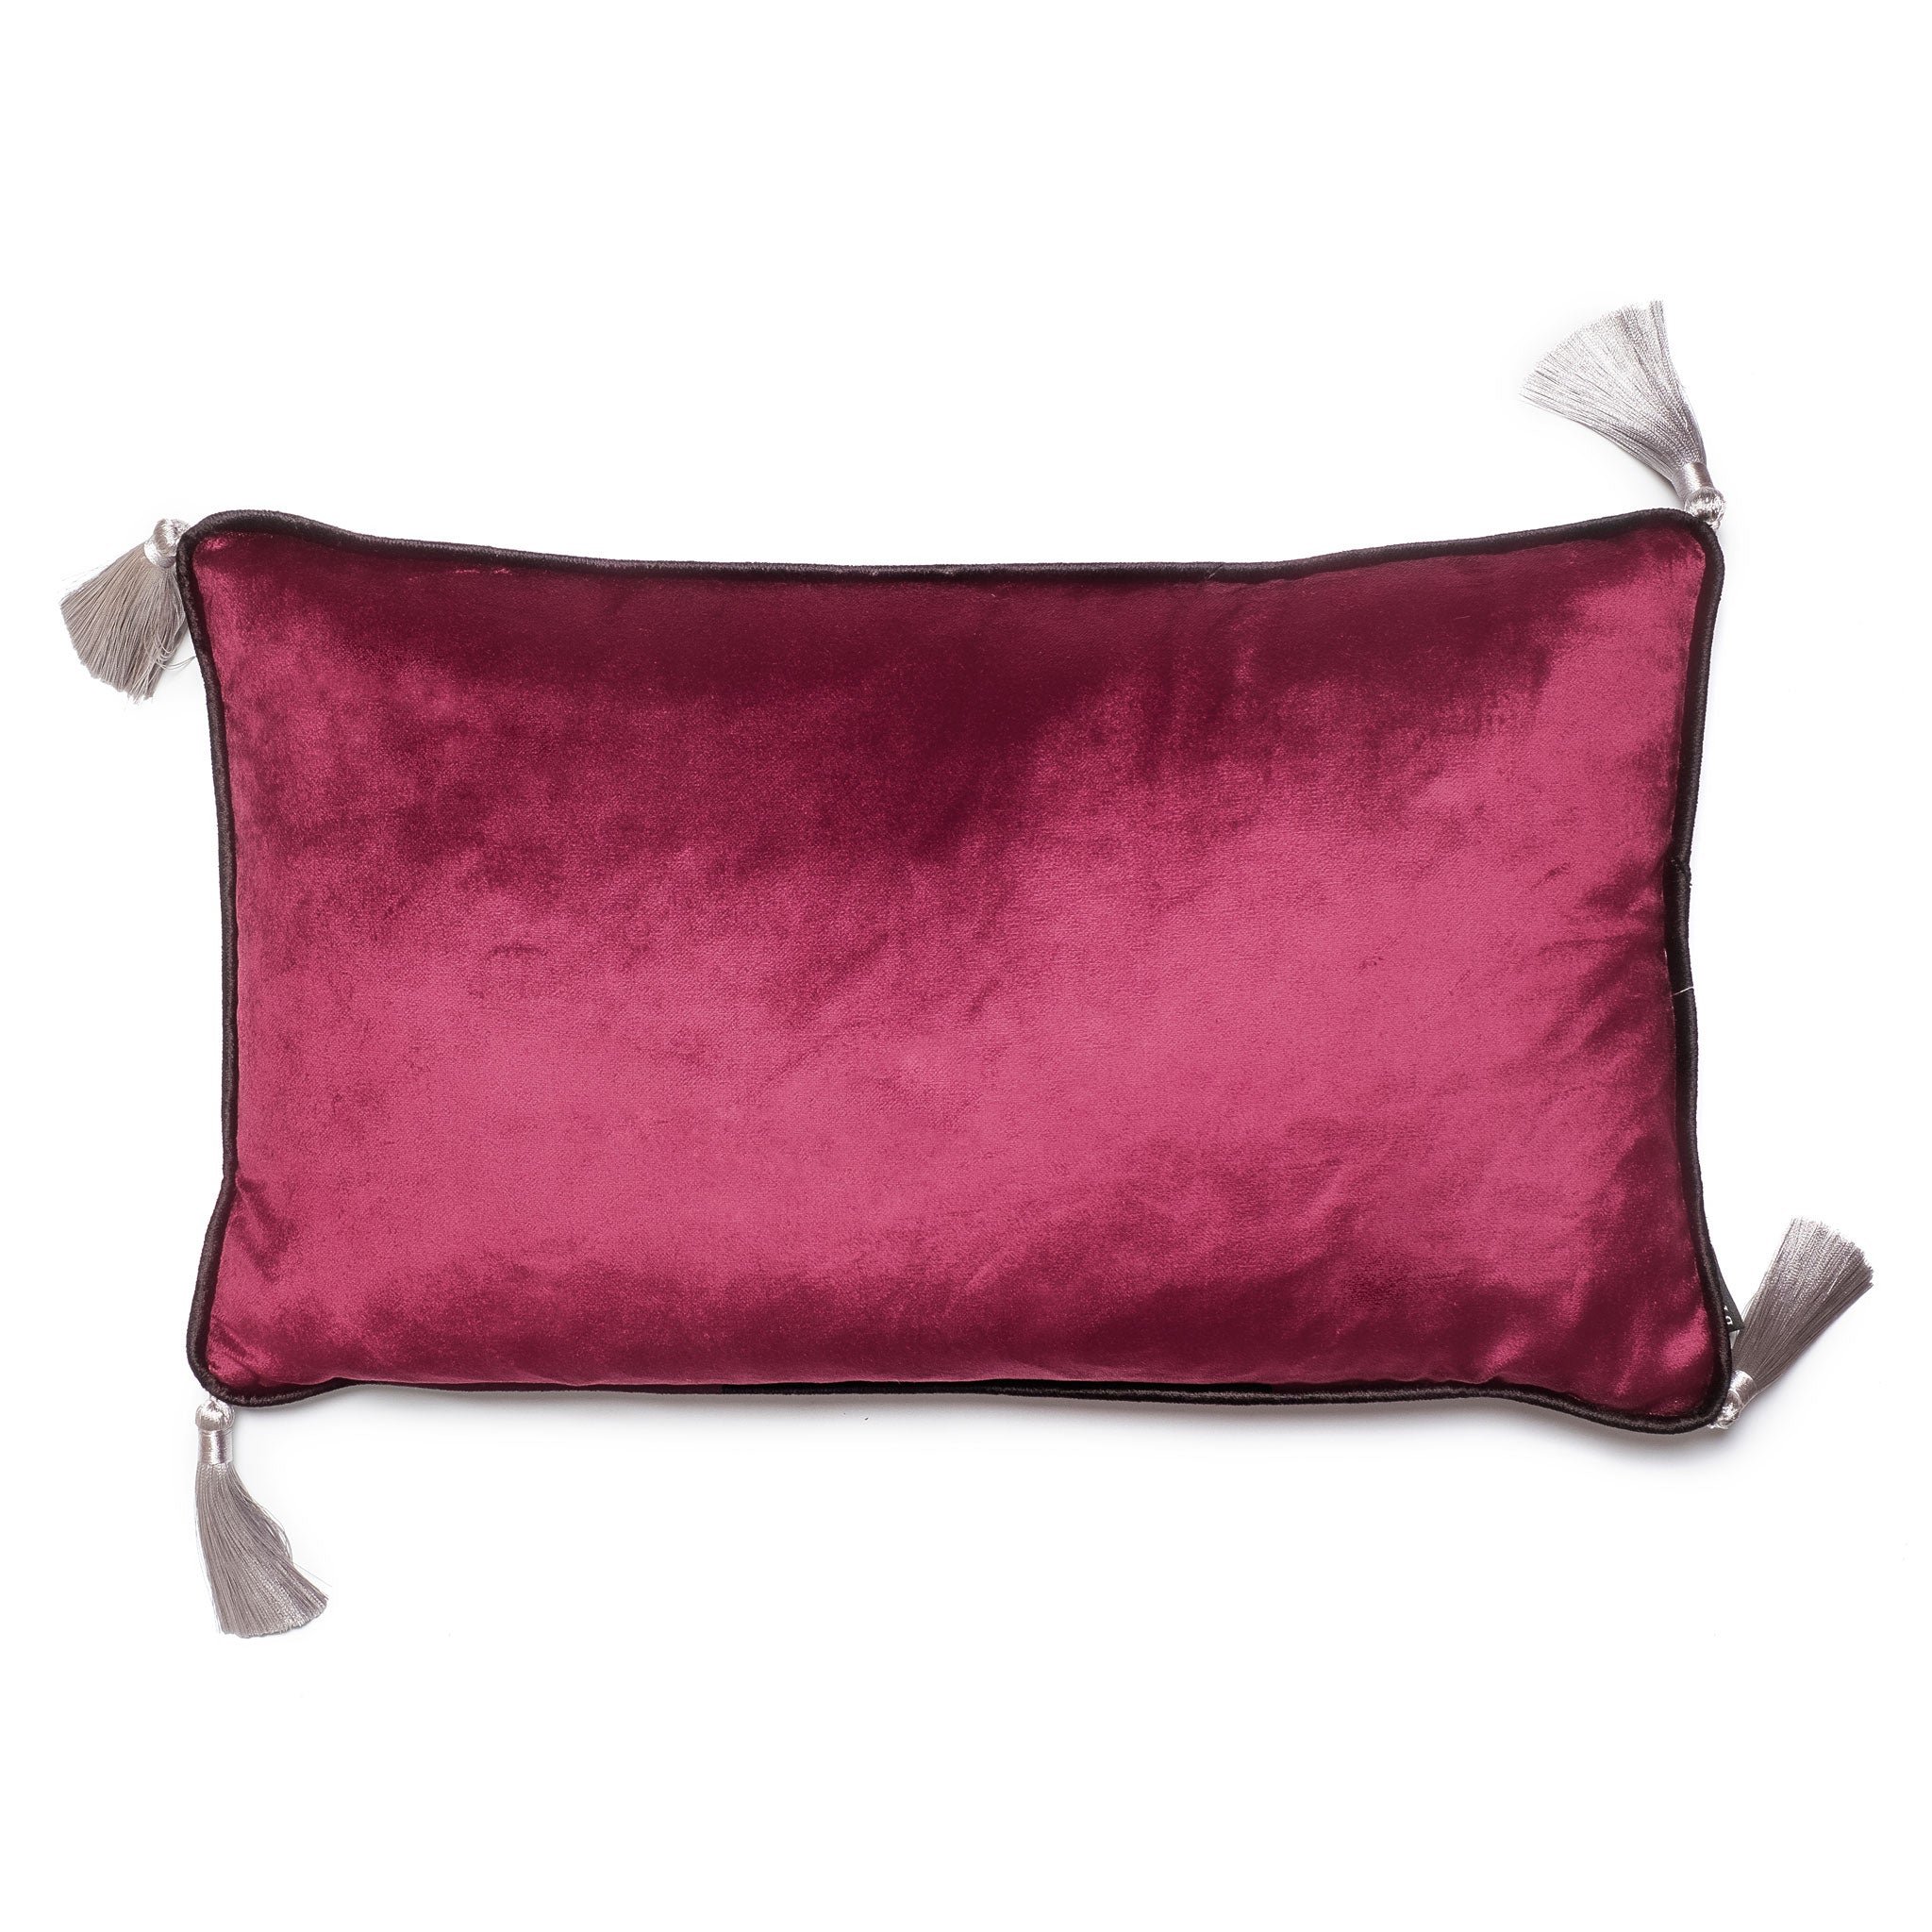 Dark Purple Velvet Rectangular Cushion with Tassels